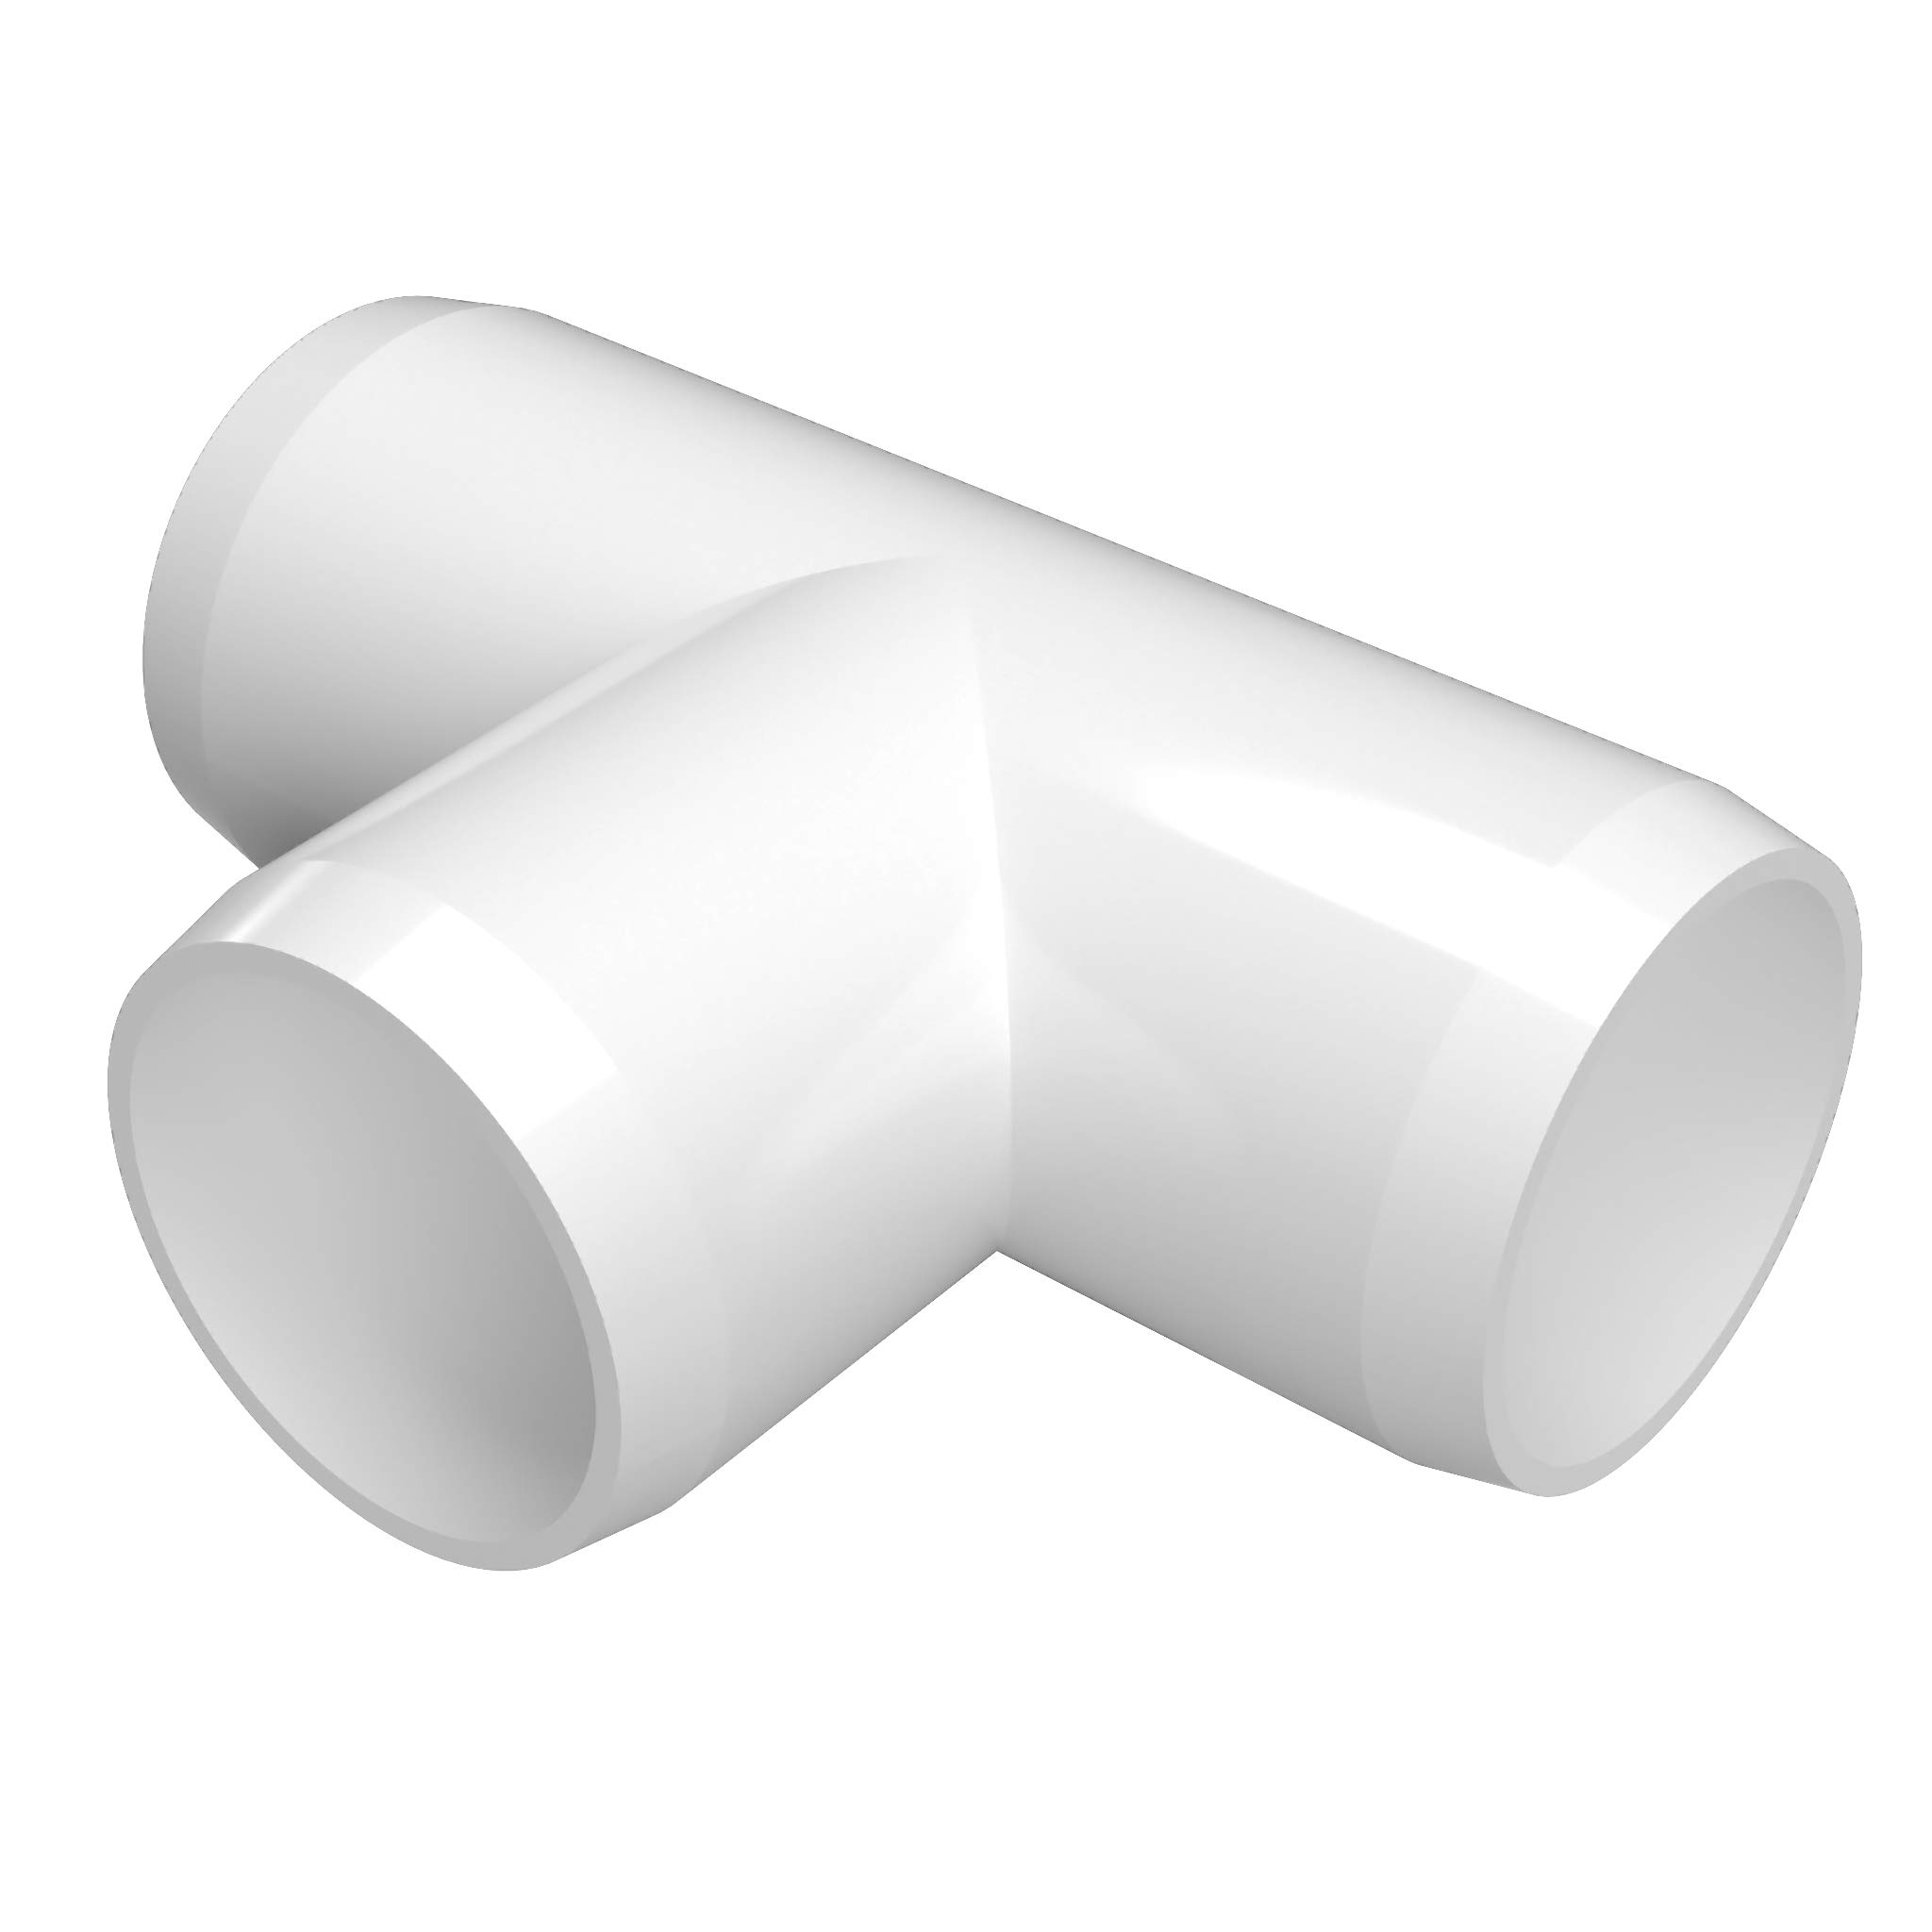 FORMUFIT F002TEE-WH-4 Tee PVC Fitting, Furniture Grade, 2'' Size, White (Pack of 4)